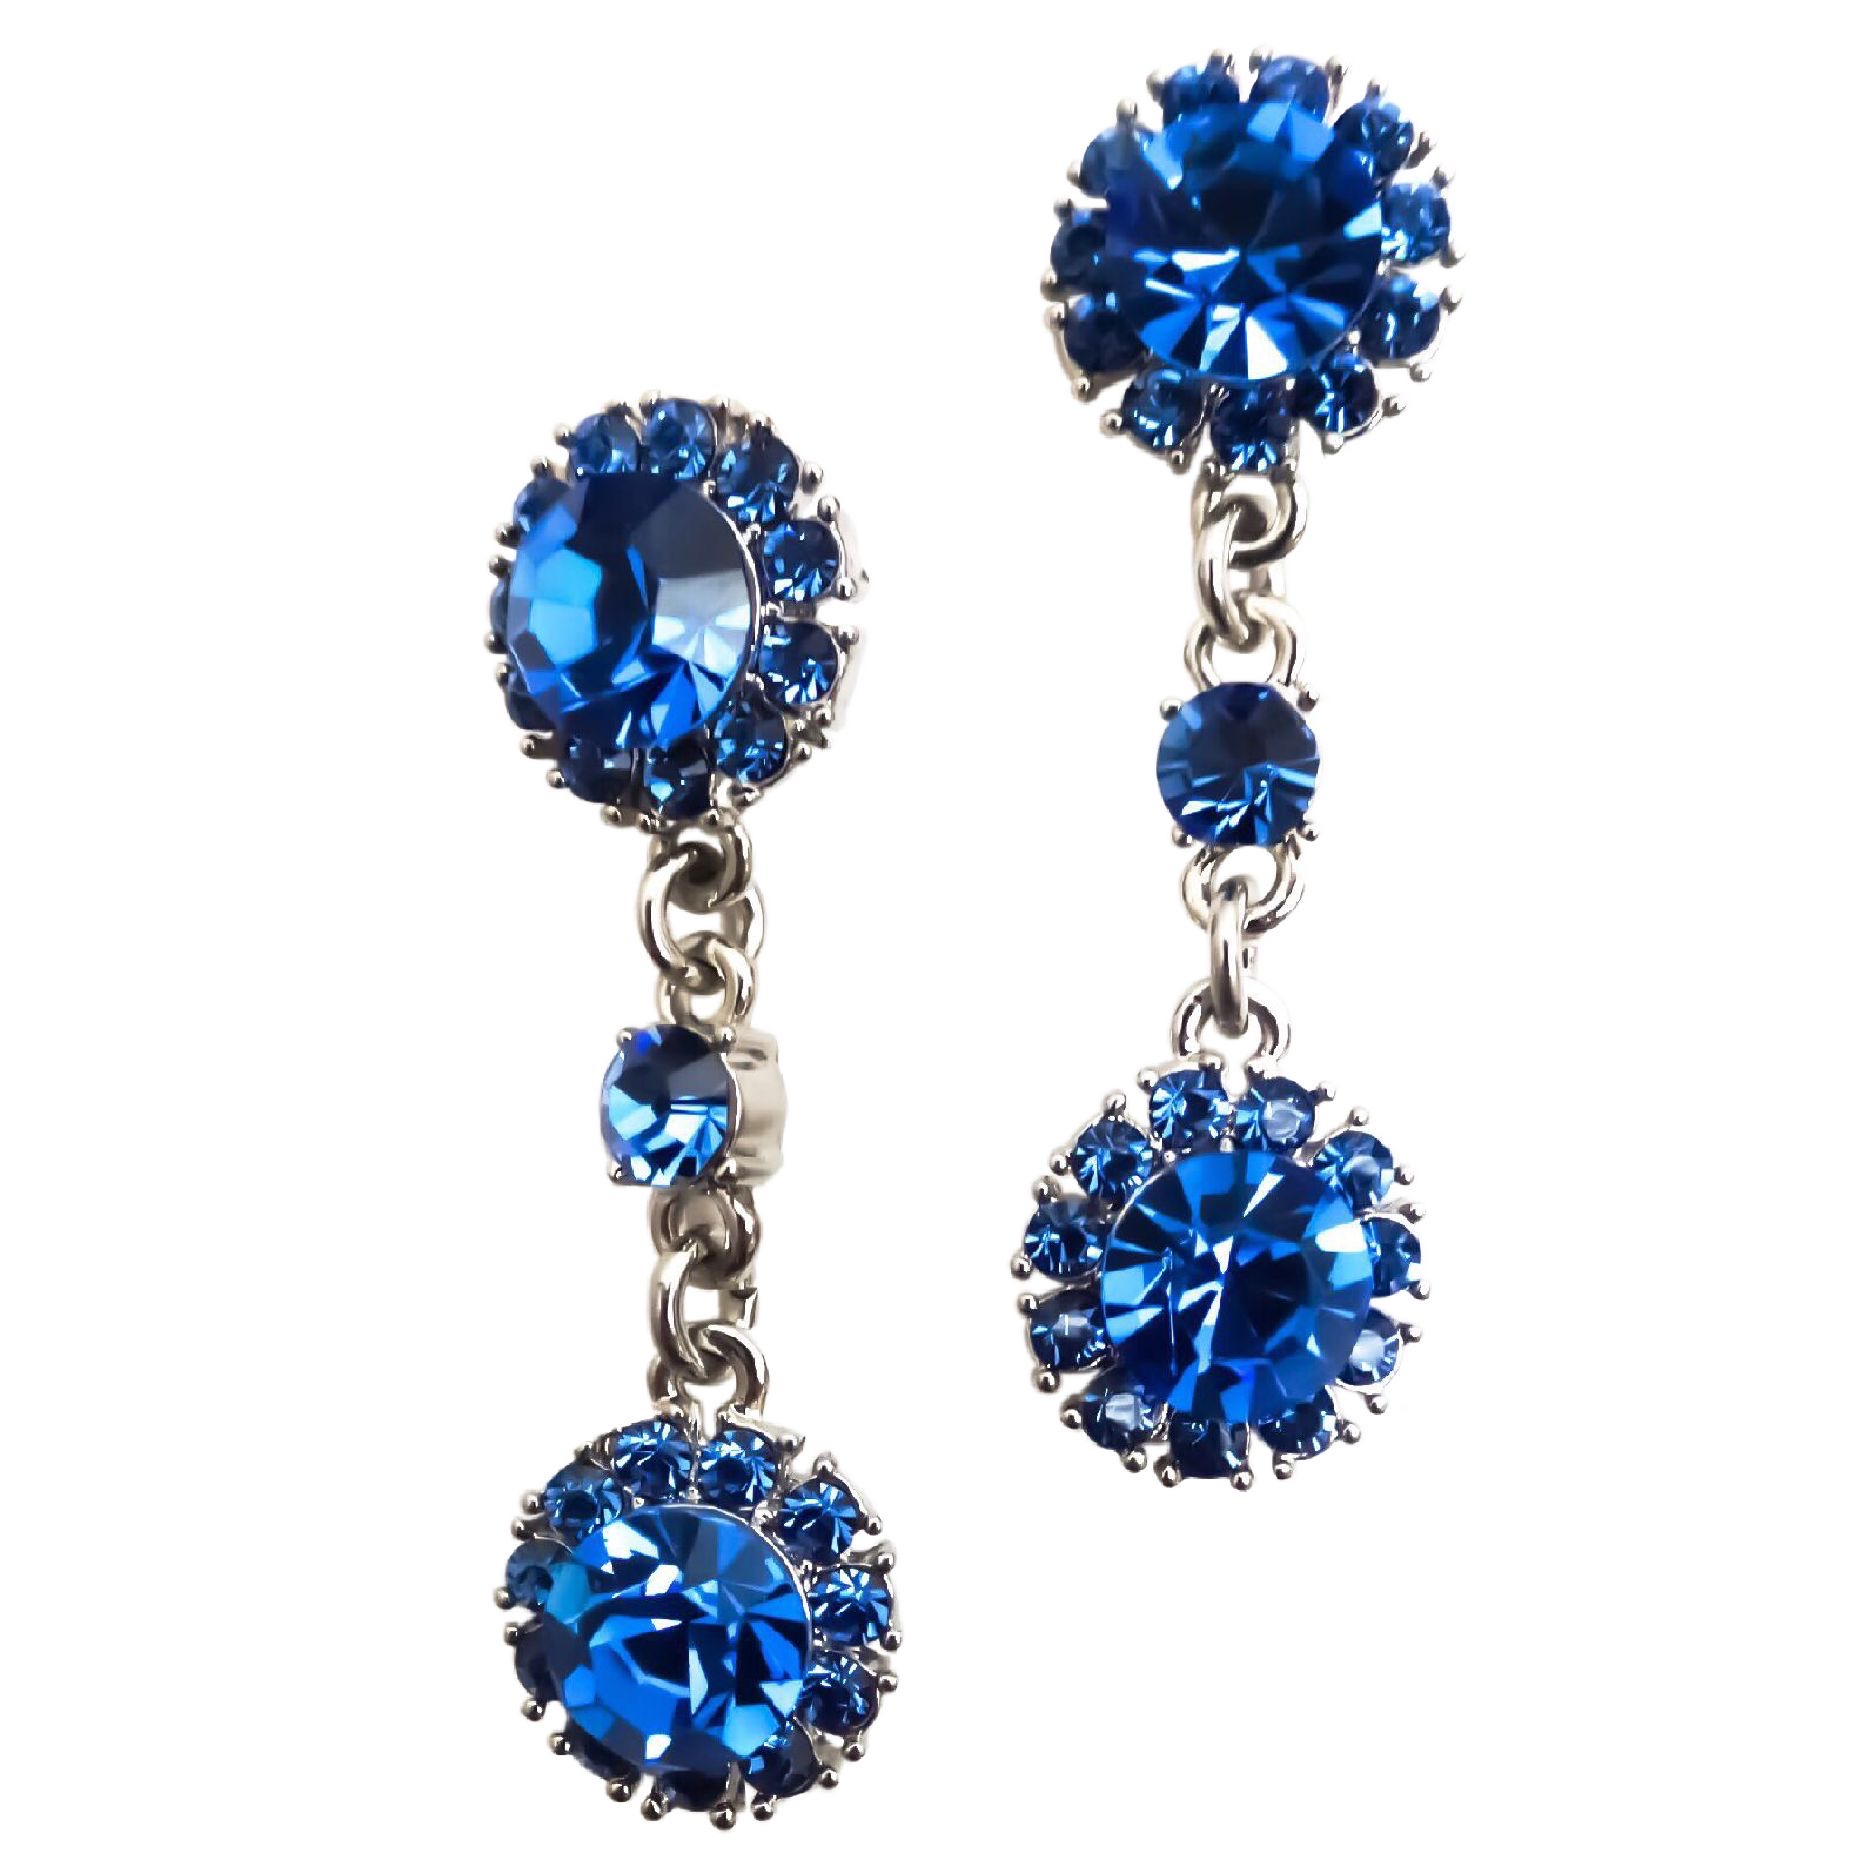 Earrings - ANNE2/SR